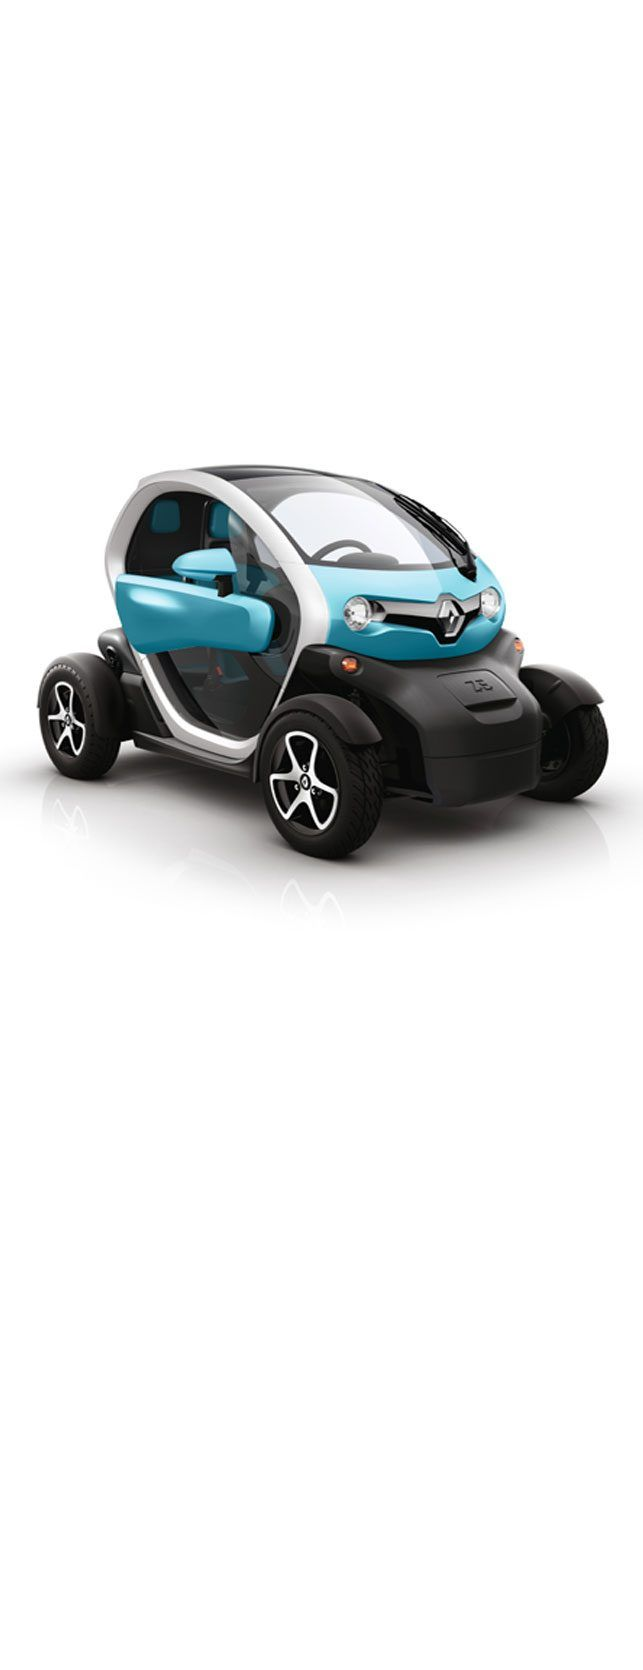 renault twizy utv xx pinterest renault electrique. Black Bedroom Furniture Sets. Home Design Ideas